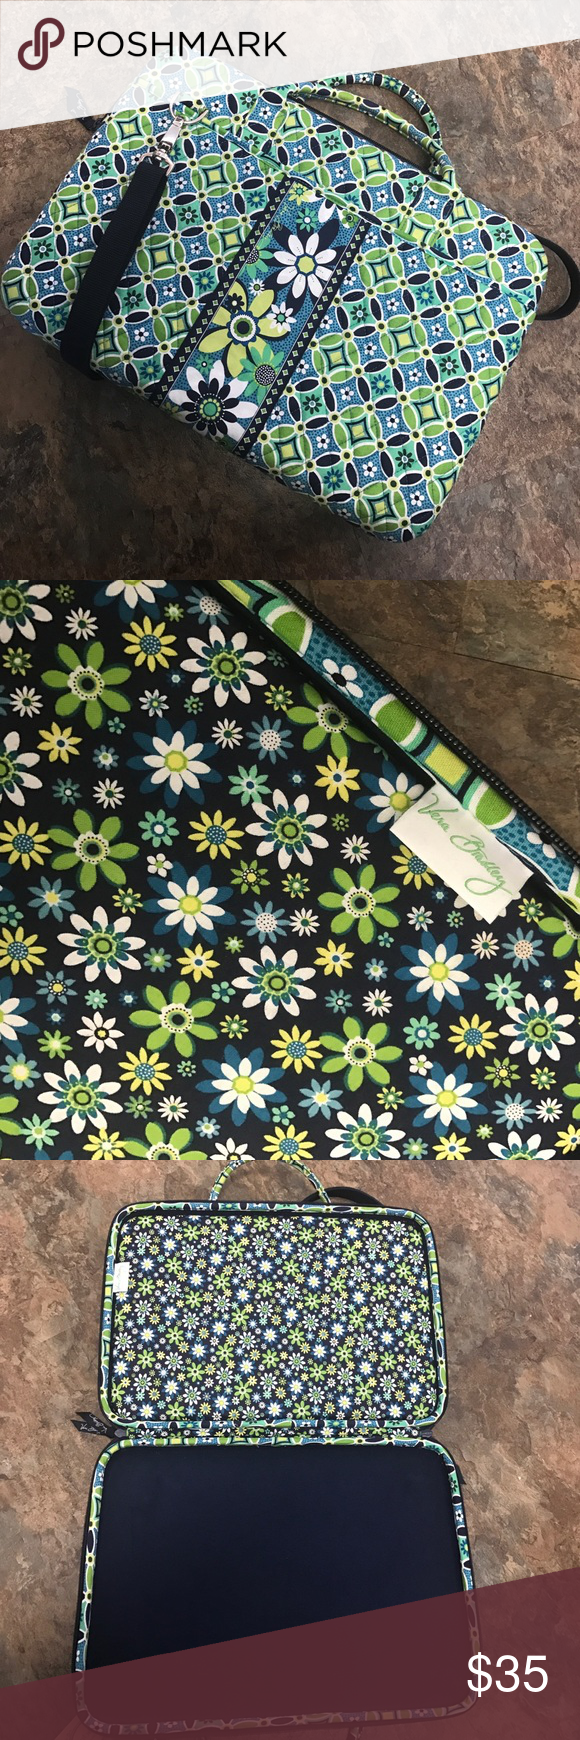 """Green & blue Vera Bradley laptop case Green & blue floral patterned Vera Bradley laptop case. Has long handle for over the shoulder and 2 small handles. Hard interior for protection. 2 large pockets on the outside. Good condition, like new. 17"""" Vera Bradley Accessories Laptop Cases"""